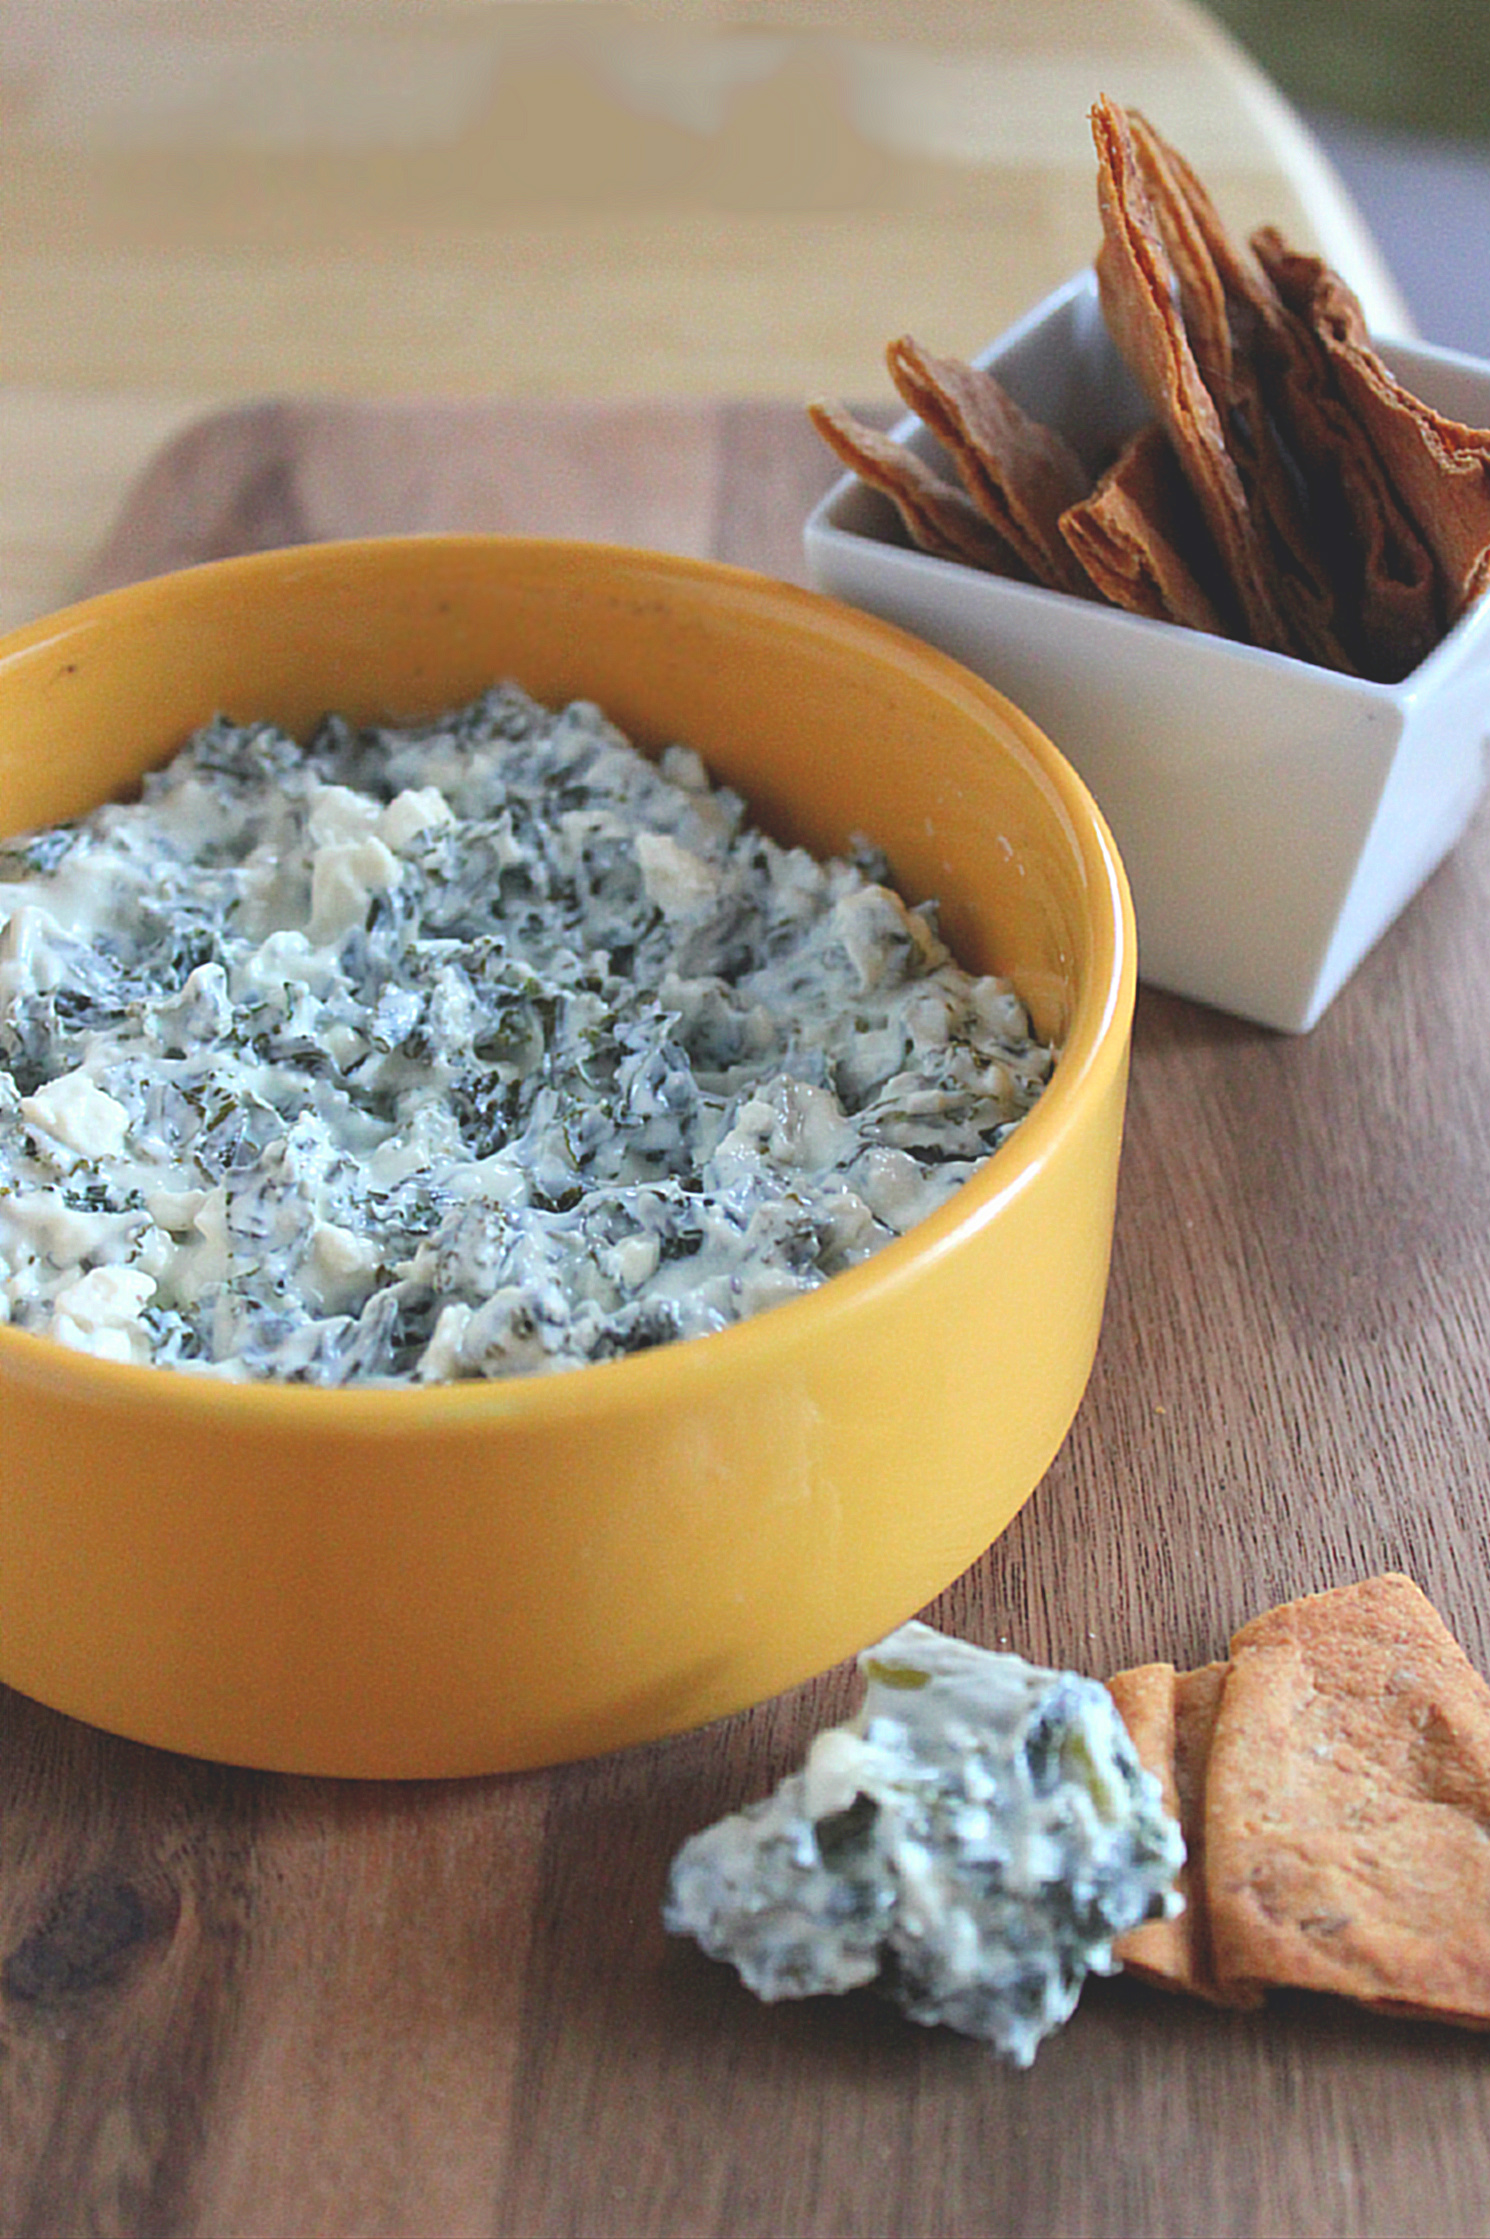 Skinny Kale & Feta Dip with Homemade Pita Chips